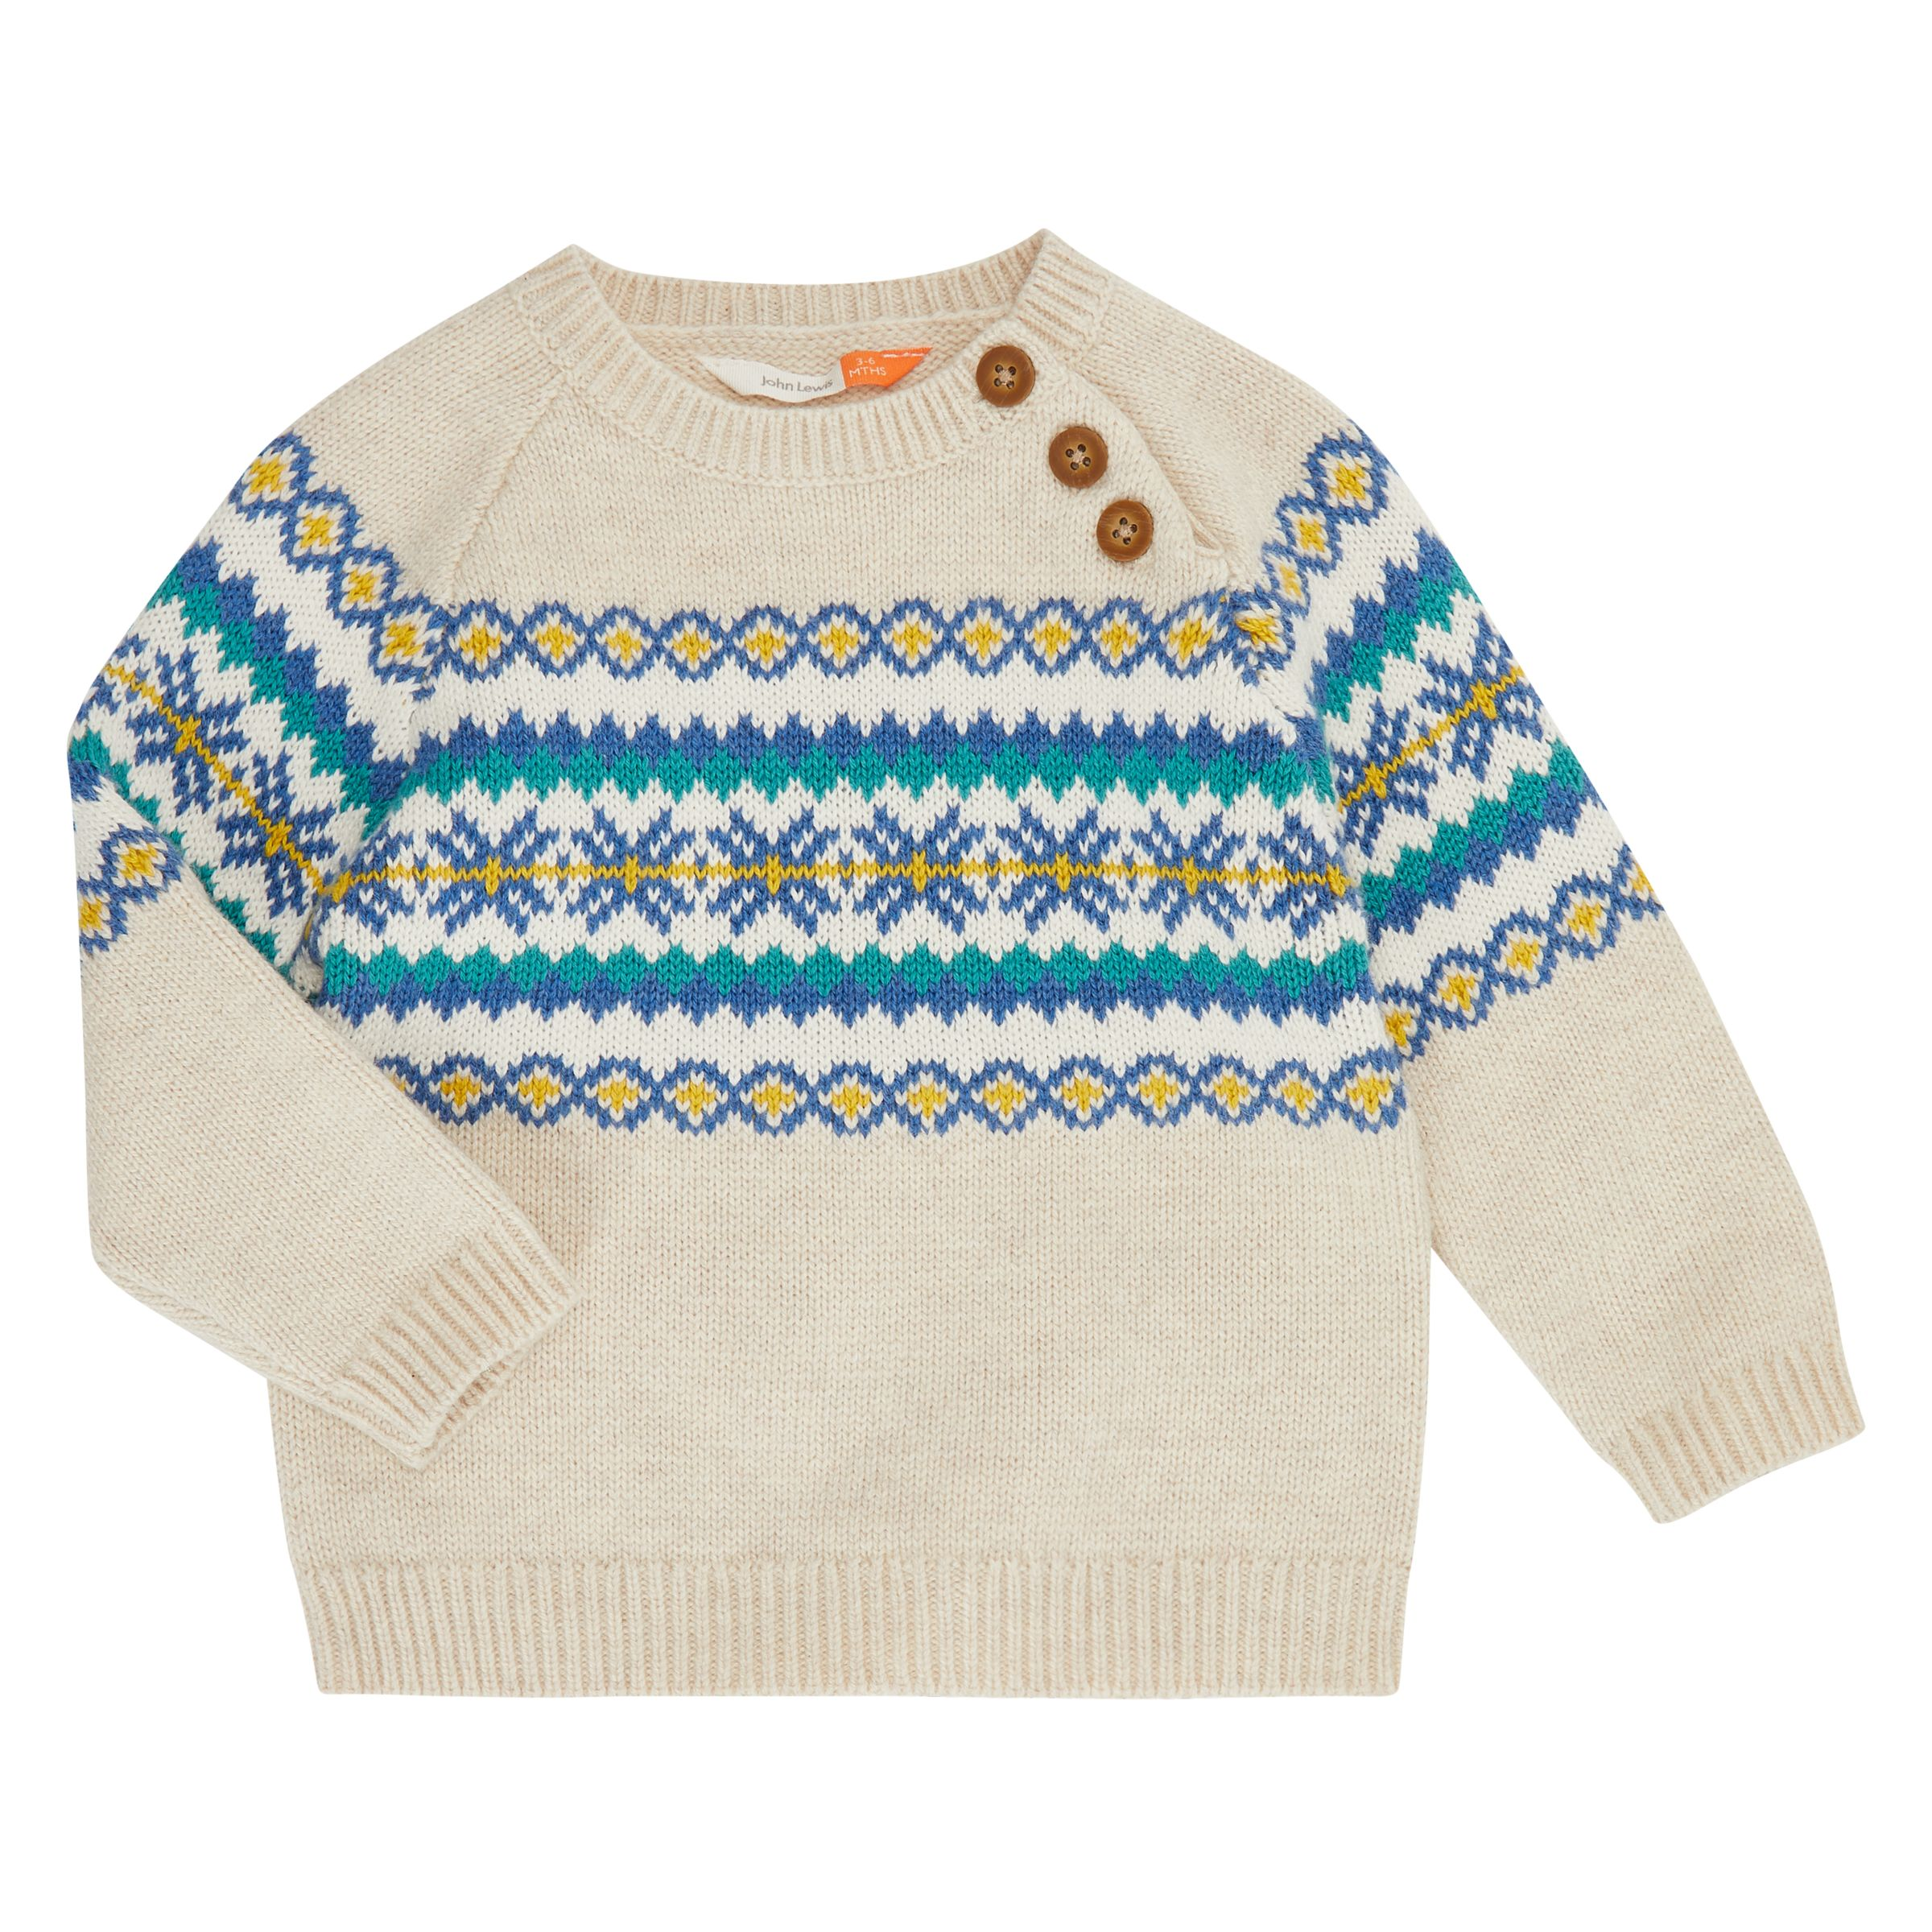 John Lewis Snowman Knitting Pattern : Christmas Jumpers UK Mens & Womens Christmas Jumpers John Lewis